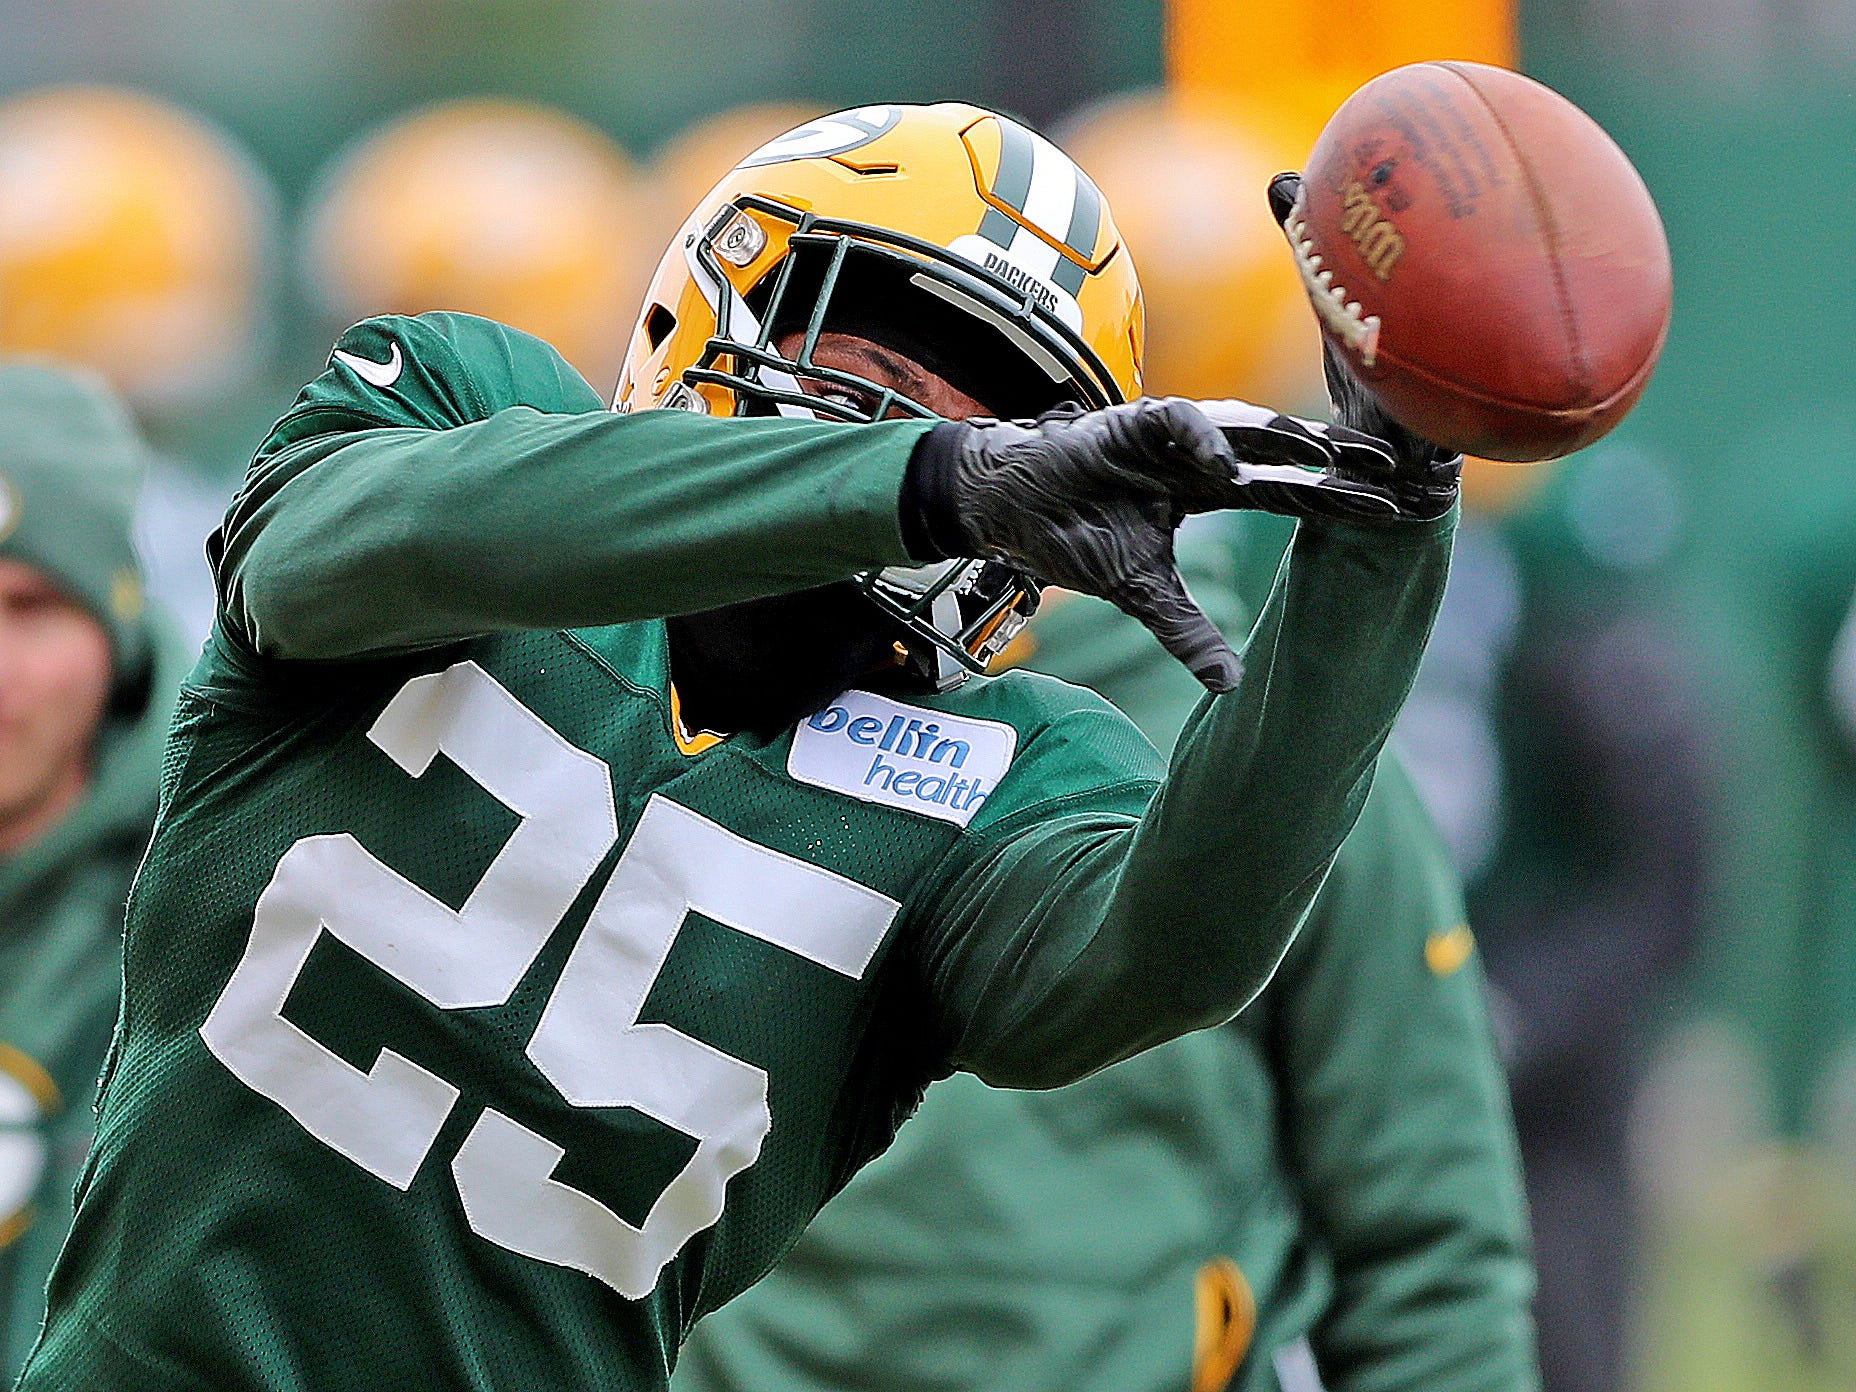 Green Bay Packers cornerback Will Redmond (25) during practice Thursday, November 8, 2018 at the Don Hutson Center in Ashwaubenon, Wis.